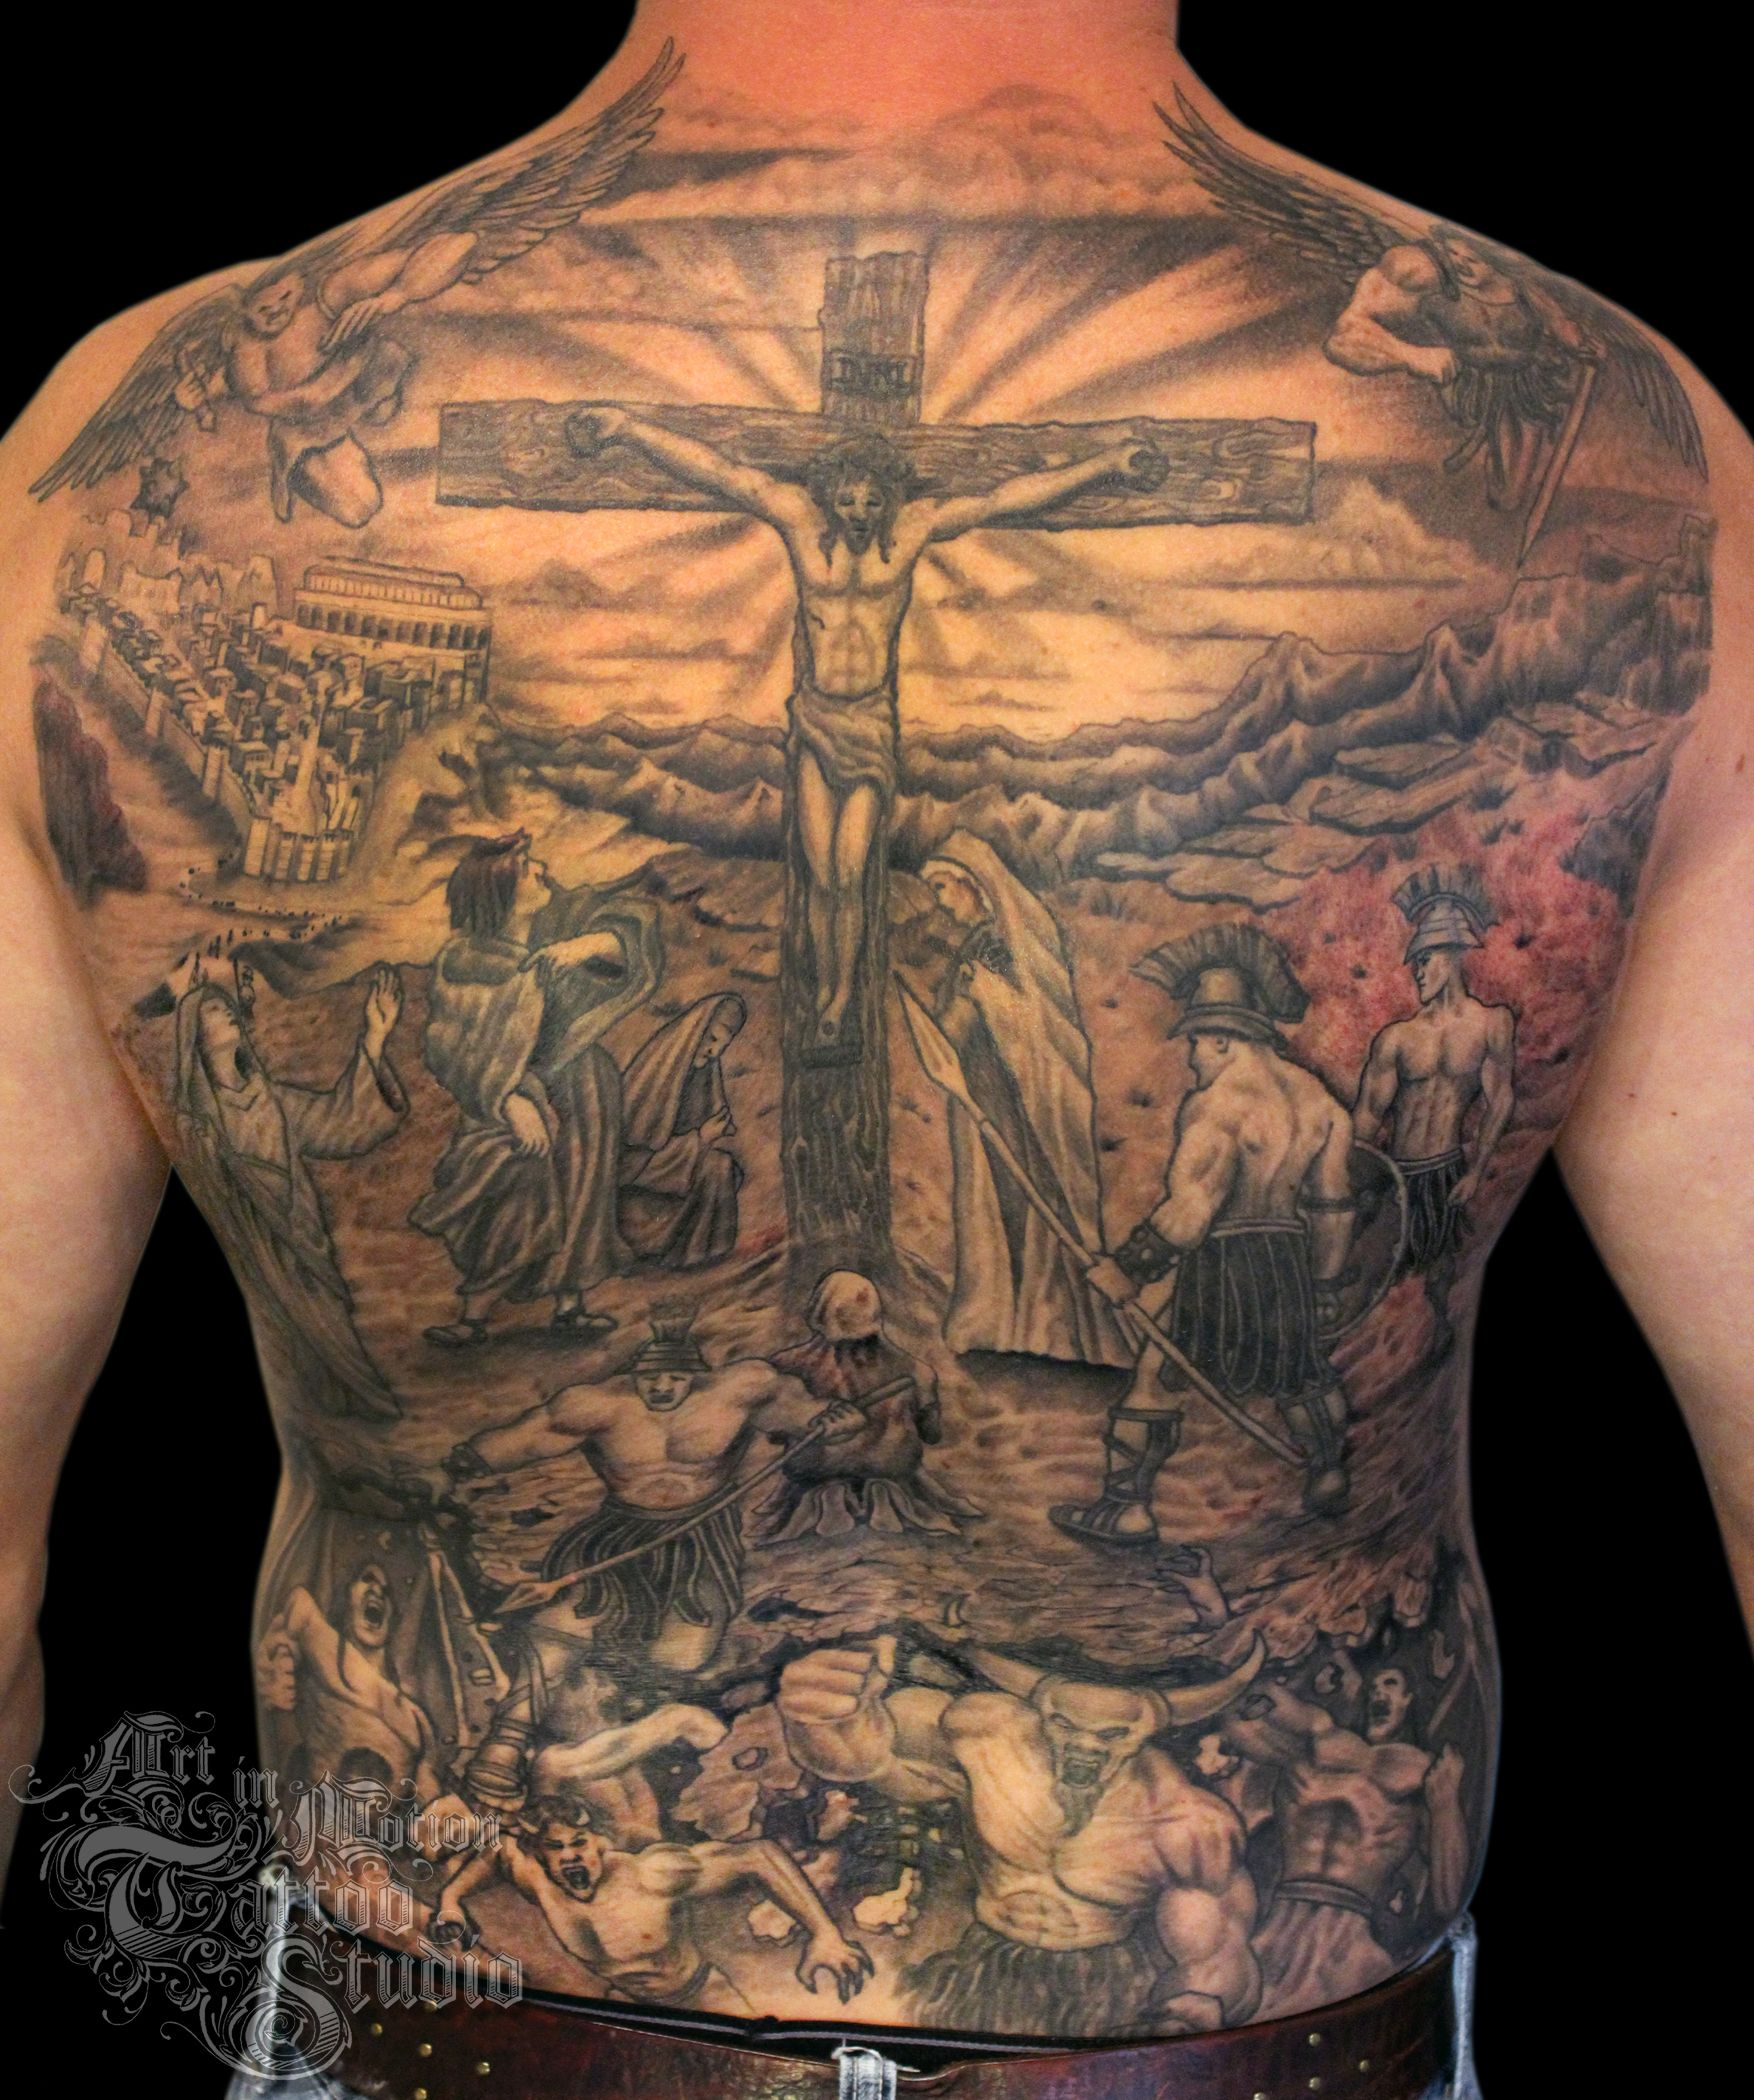 Download Free The Crucifixion Art In Motion Tattoo Studio To Use